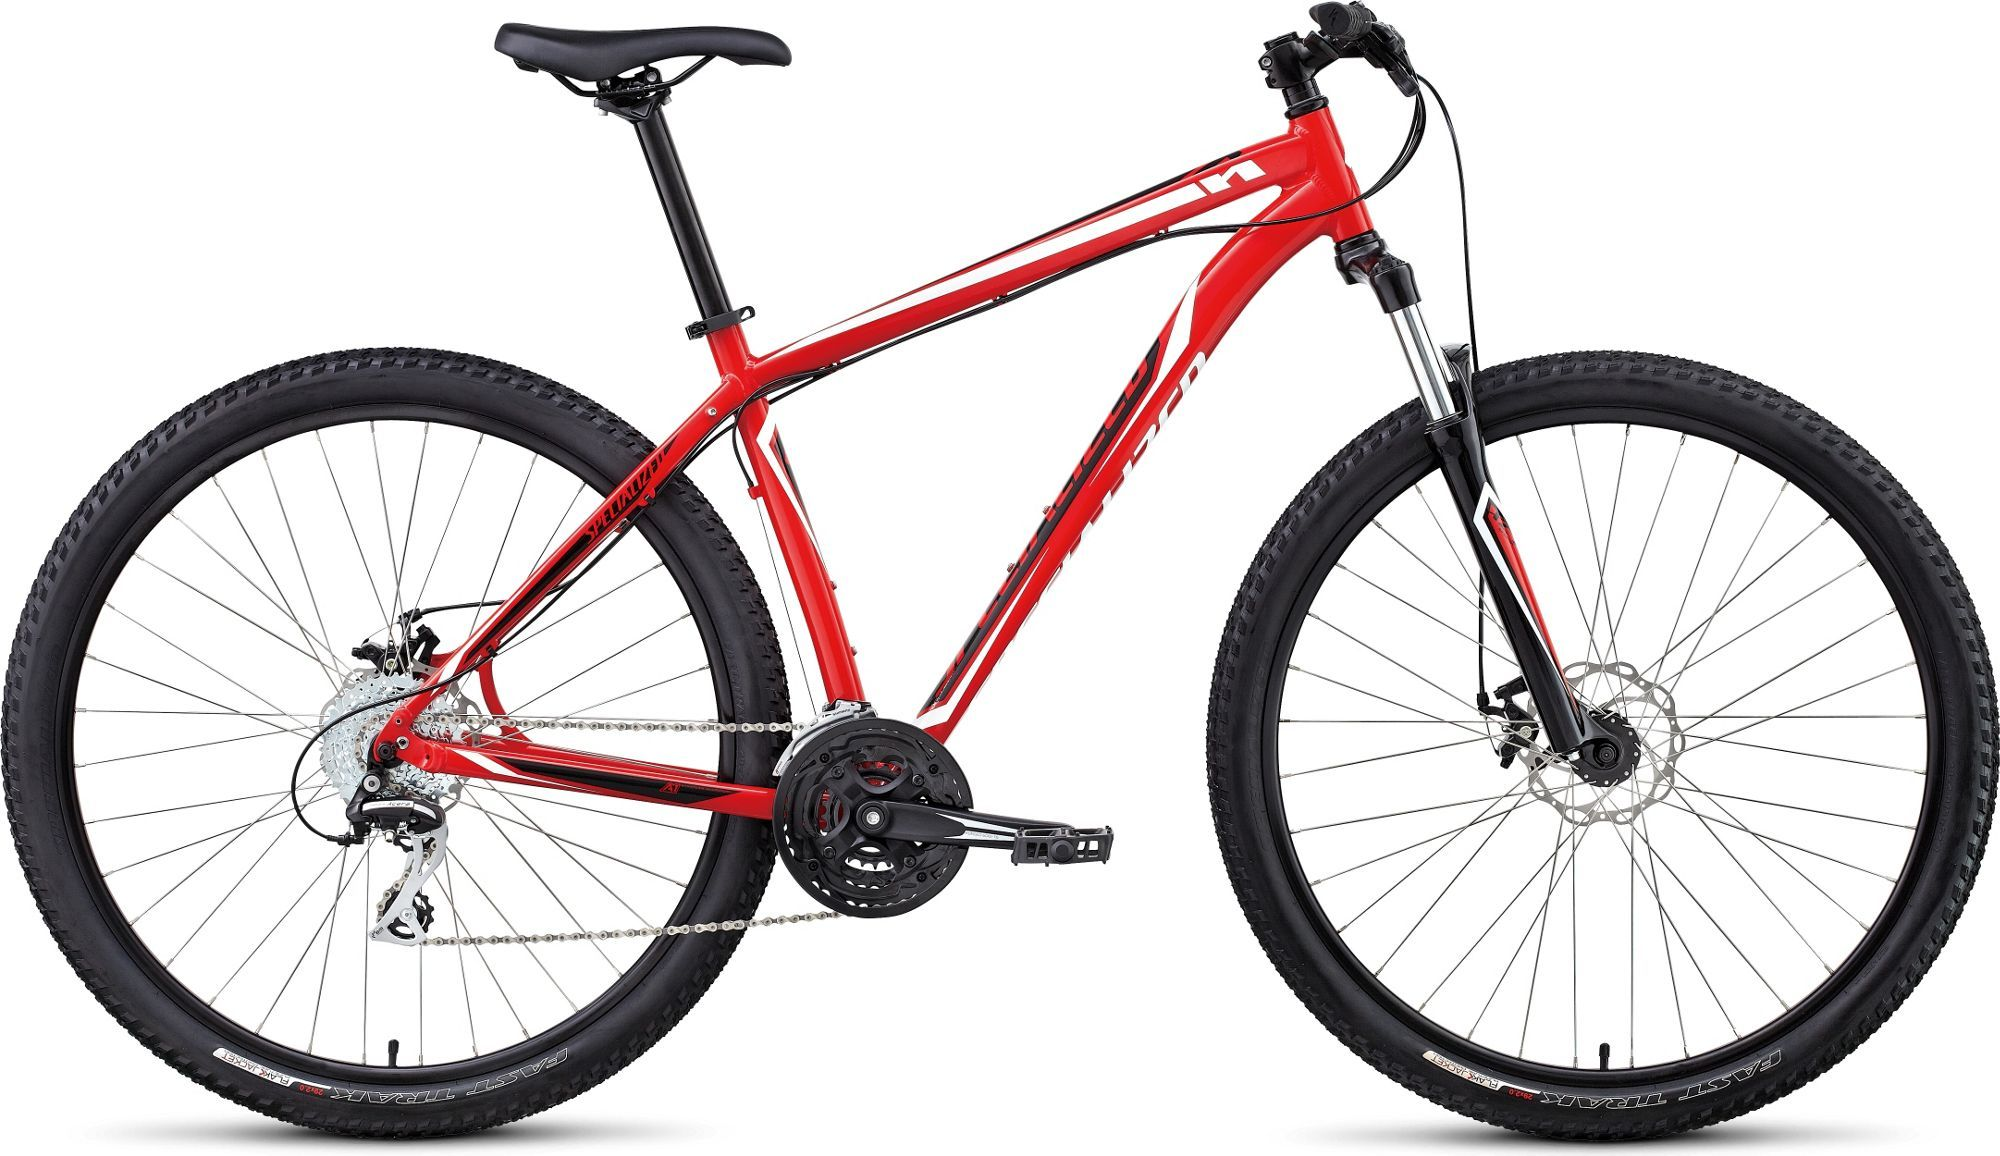 Specialized Hardrock Disc 2014 Review The Bike List